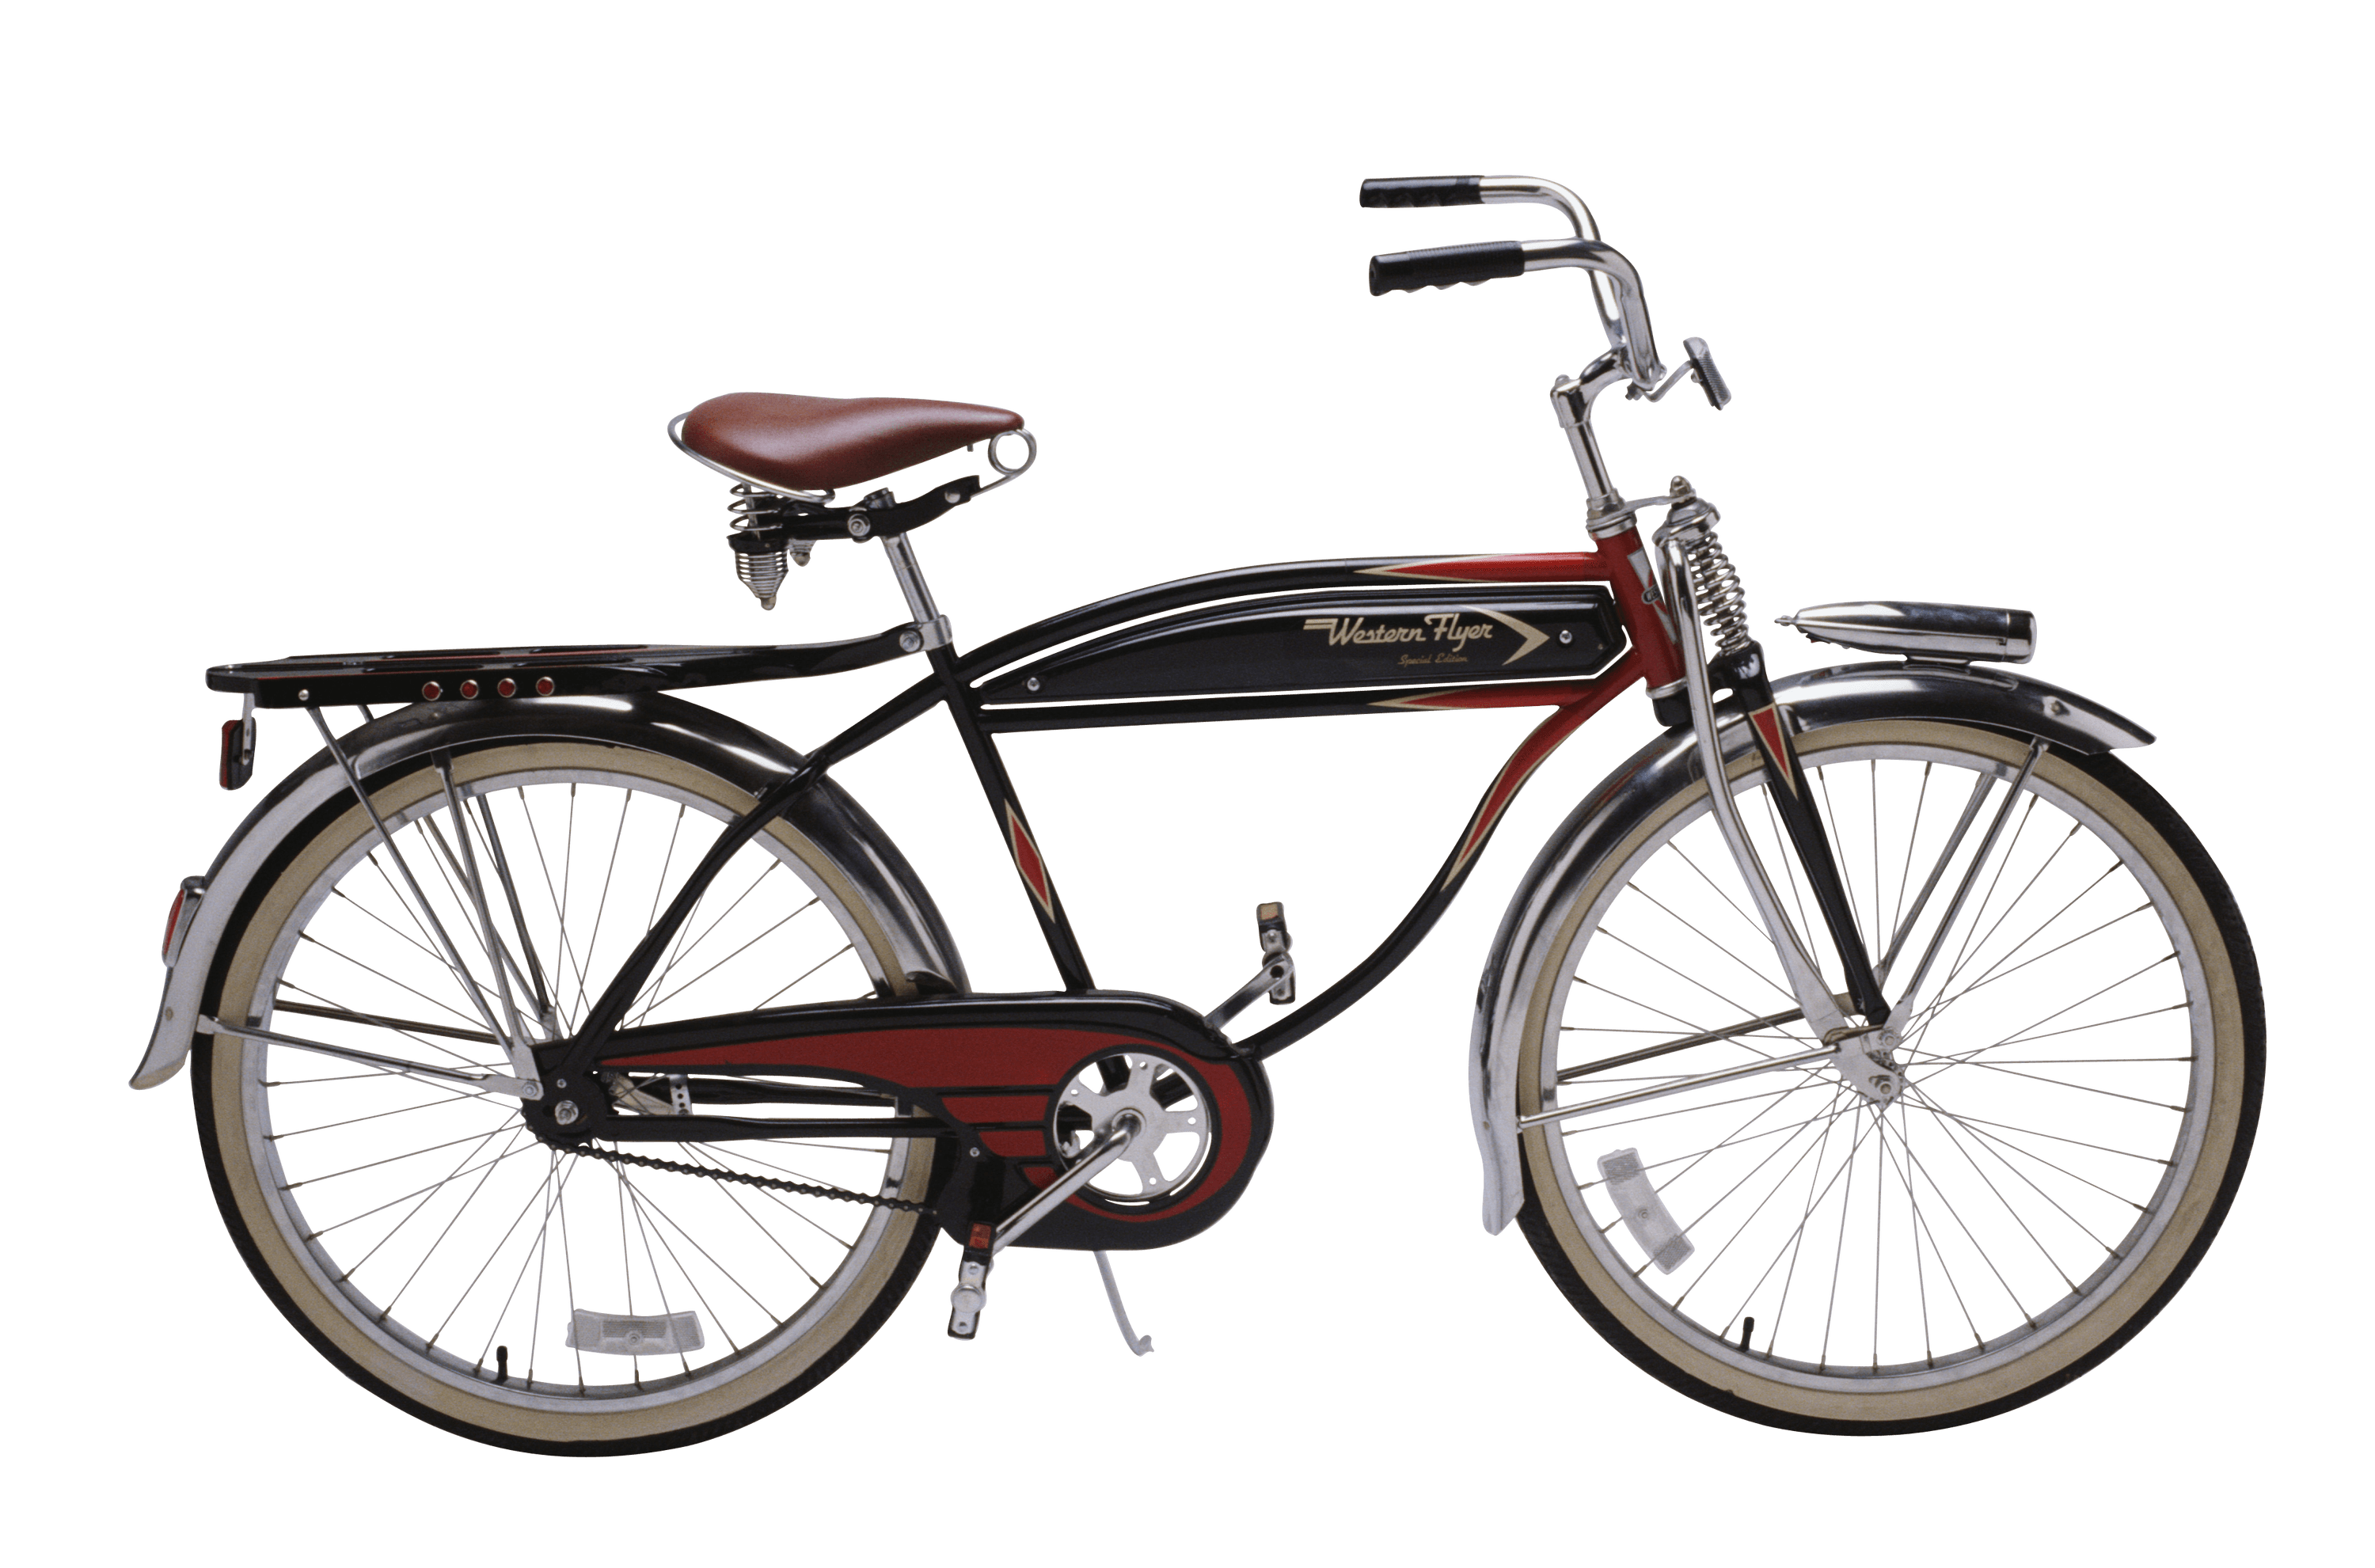 Clipart bicycle antique bike. Bicycles transparent png images